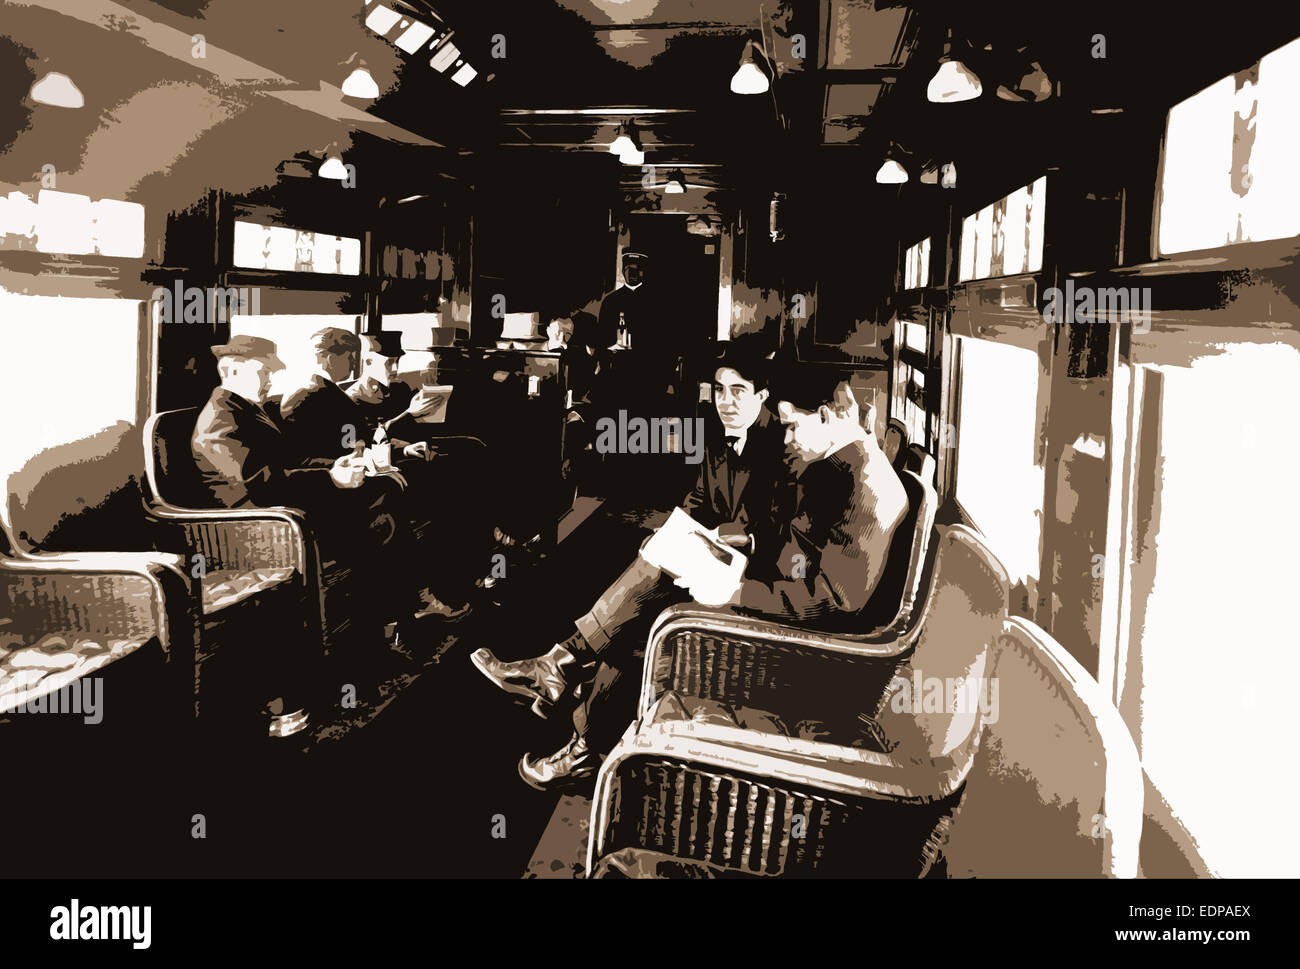 Buffet library car on a deluxe overland limited train, Railroad dining cars, Reading, Passengers, 1910 - Stock Image